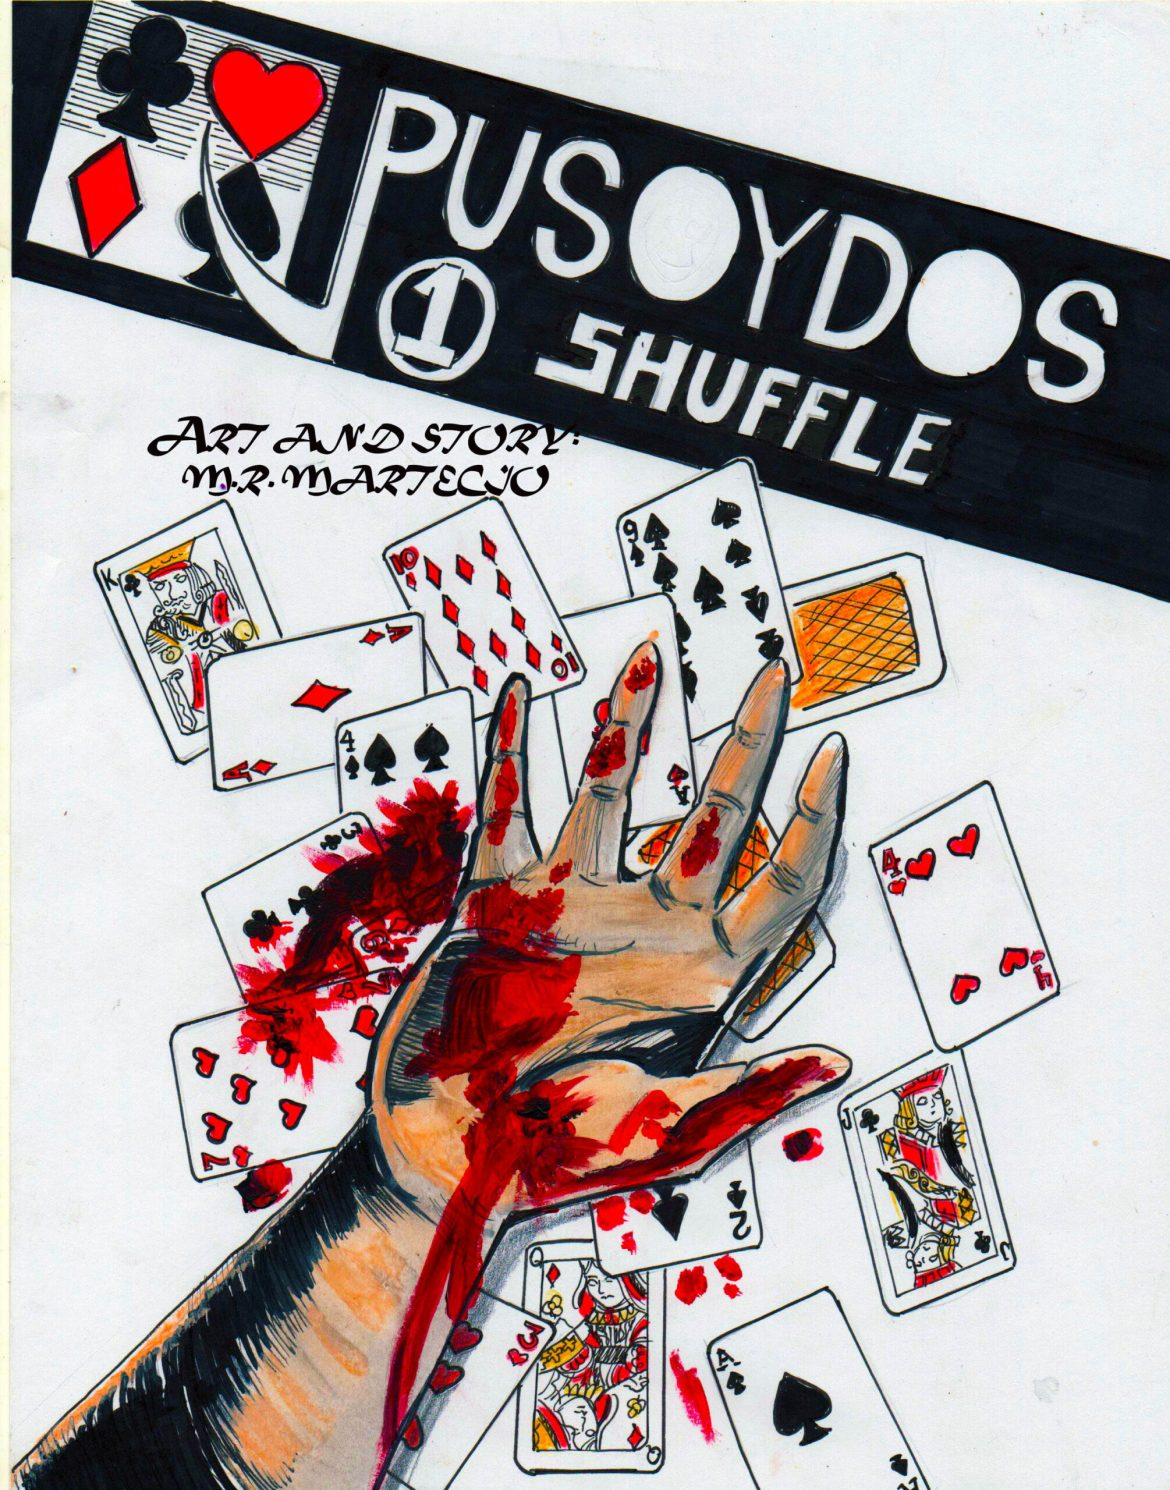 Pusoy Dos 1